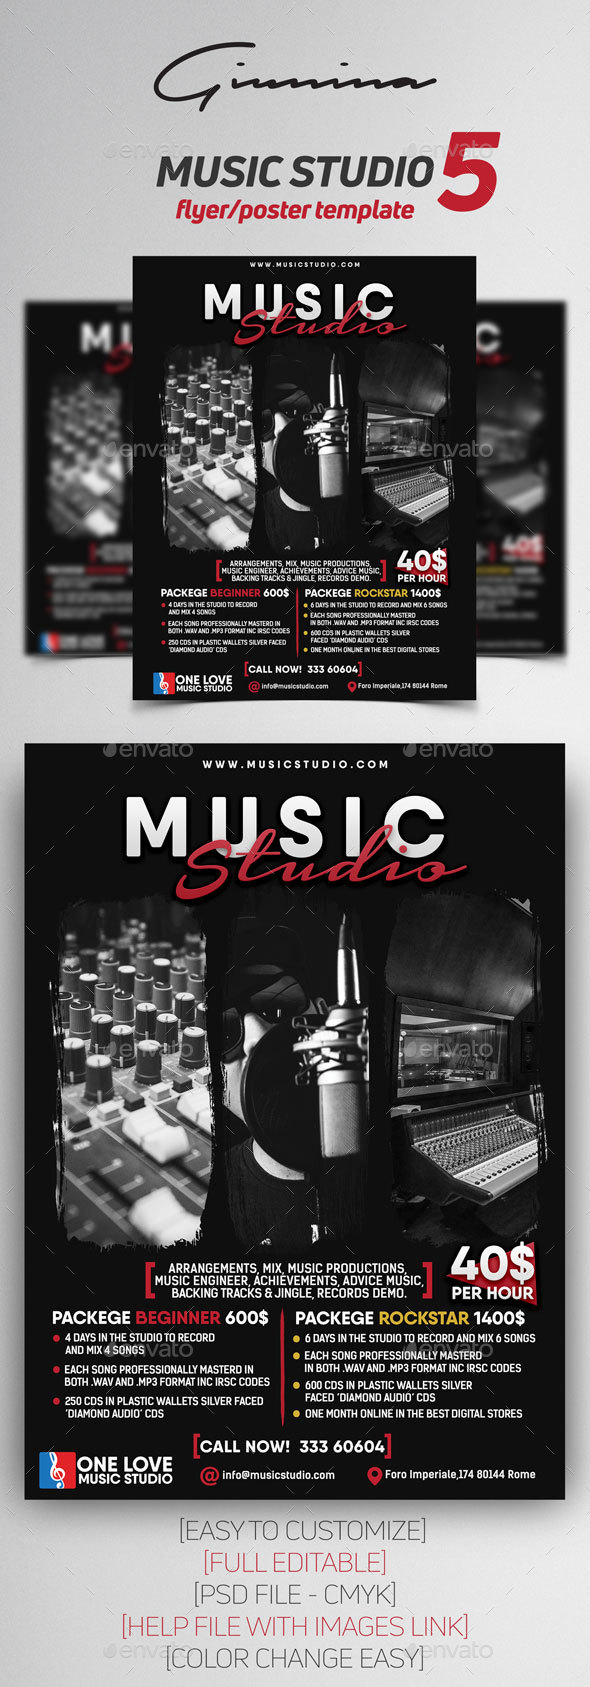 Music Studio 5 Flyer/Poster - Commerce Flyers